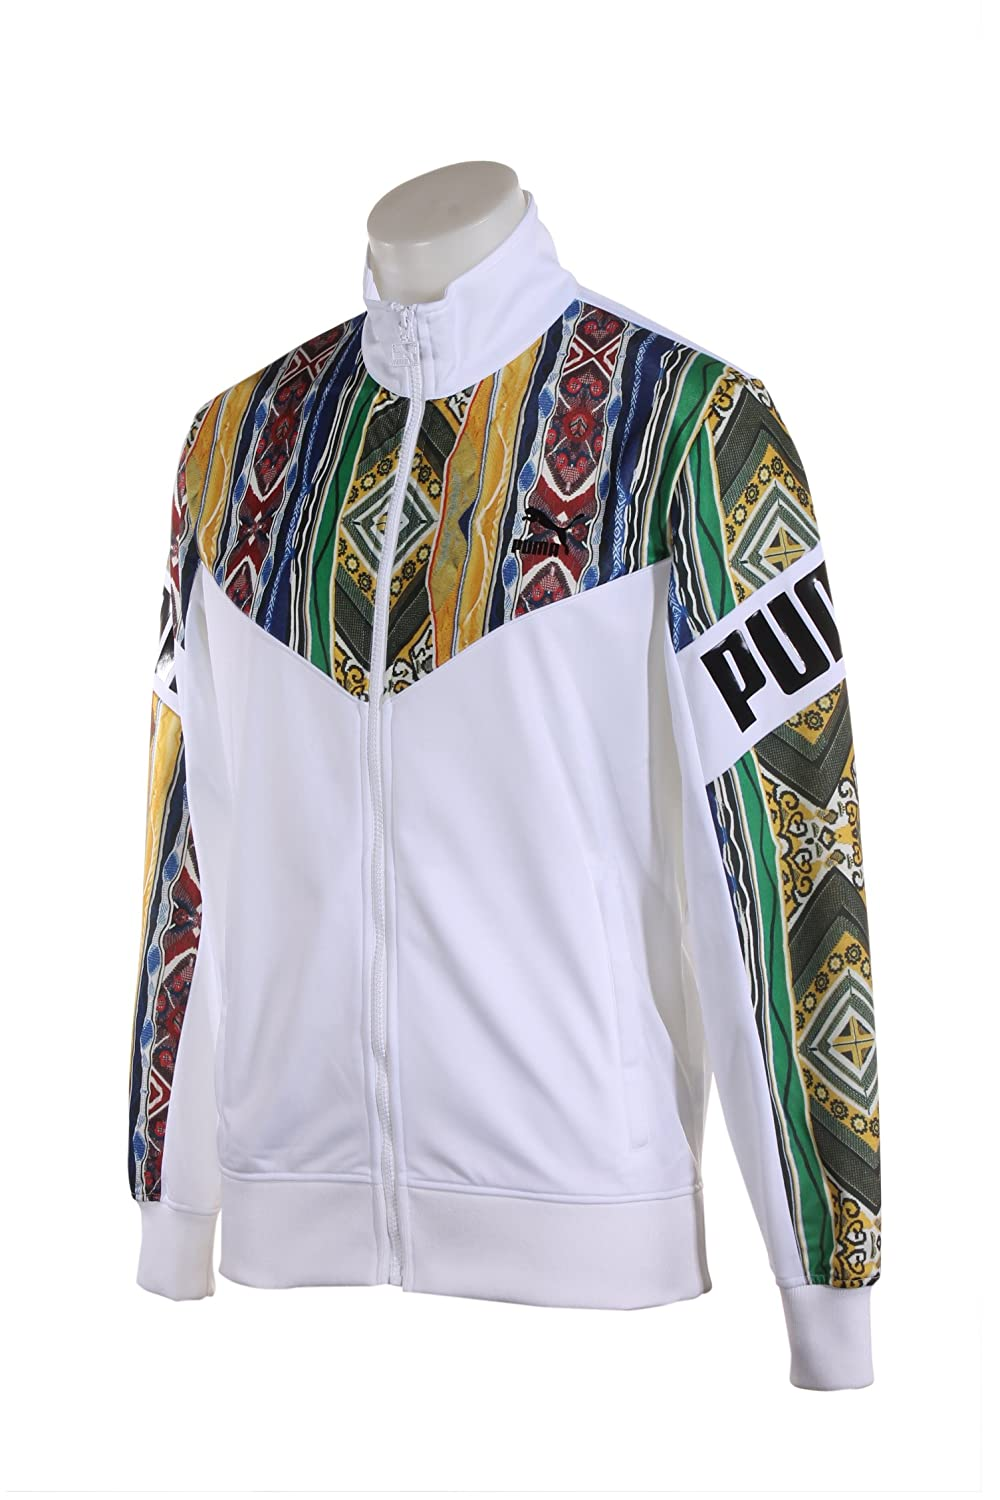 differently b20de 45dff 575201-01 Men COOGI Track Jacket PUMA White: PUMA: Amazon.ca ...